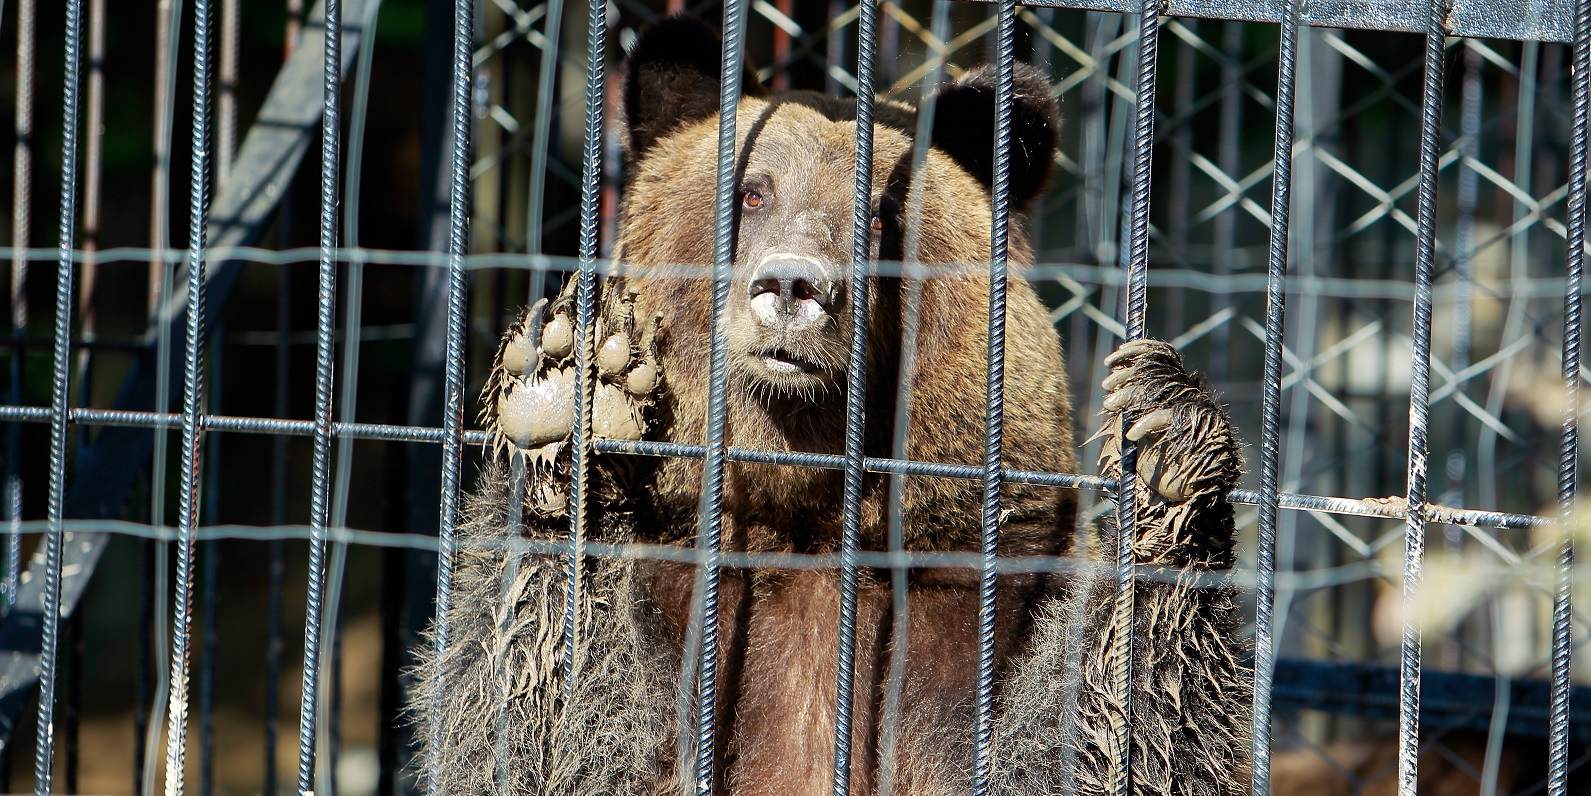 bears kept in cages cannot pursue their natural needs